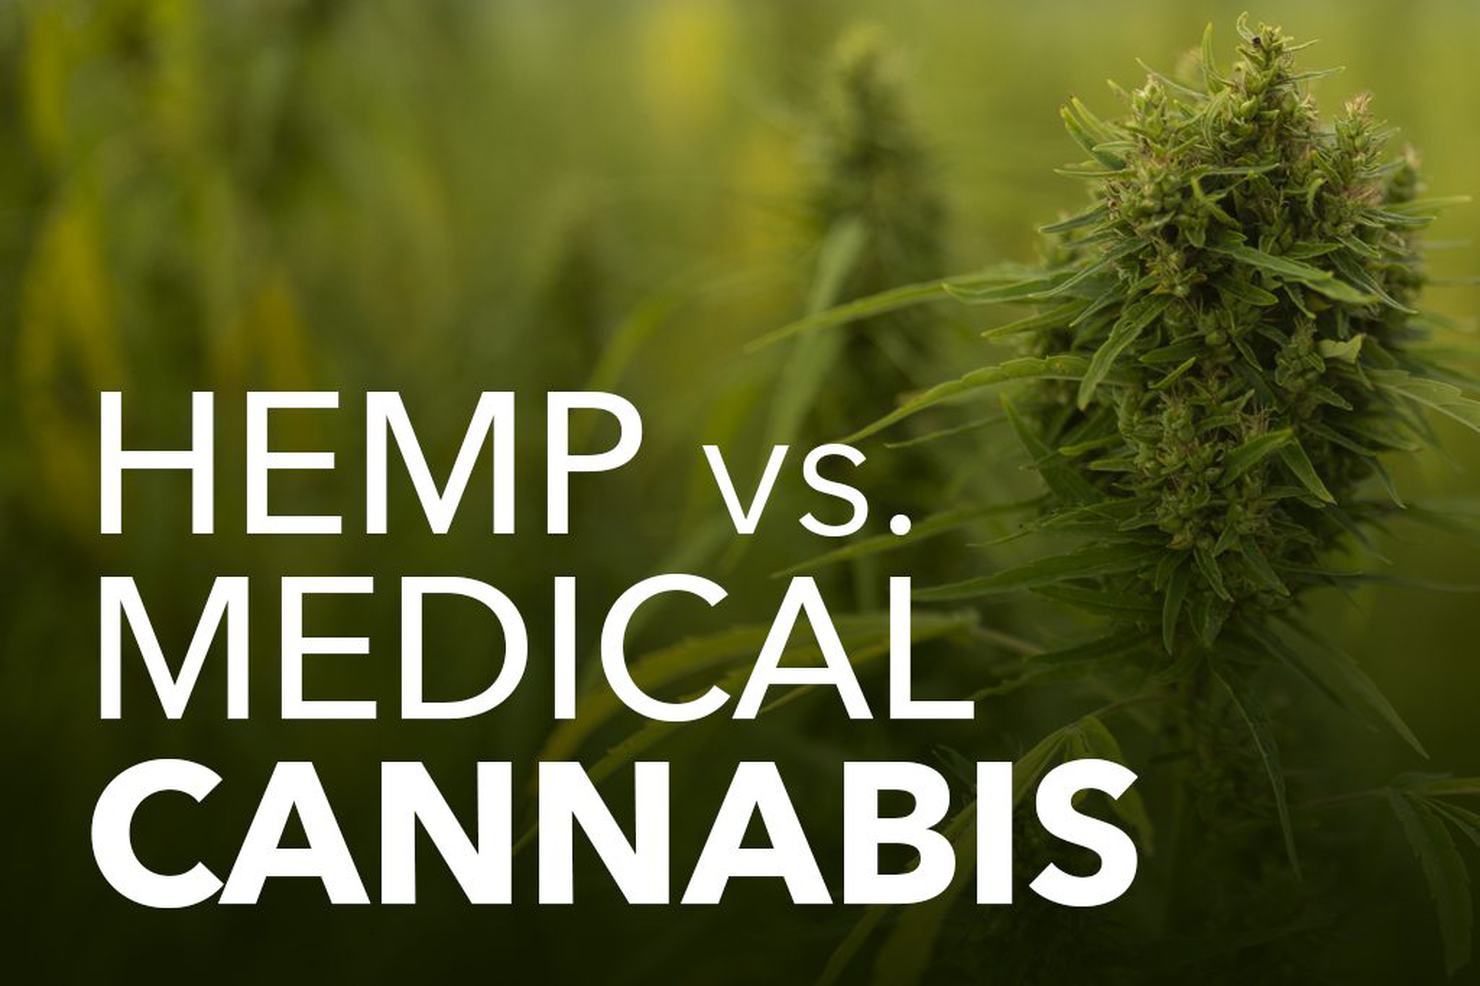 Hemp vs. Weed: What Is the Difference Between Hemp & Medical Cannabis?